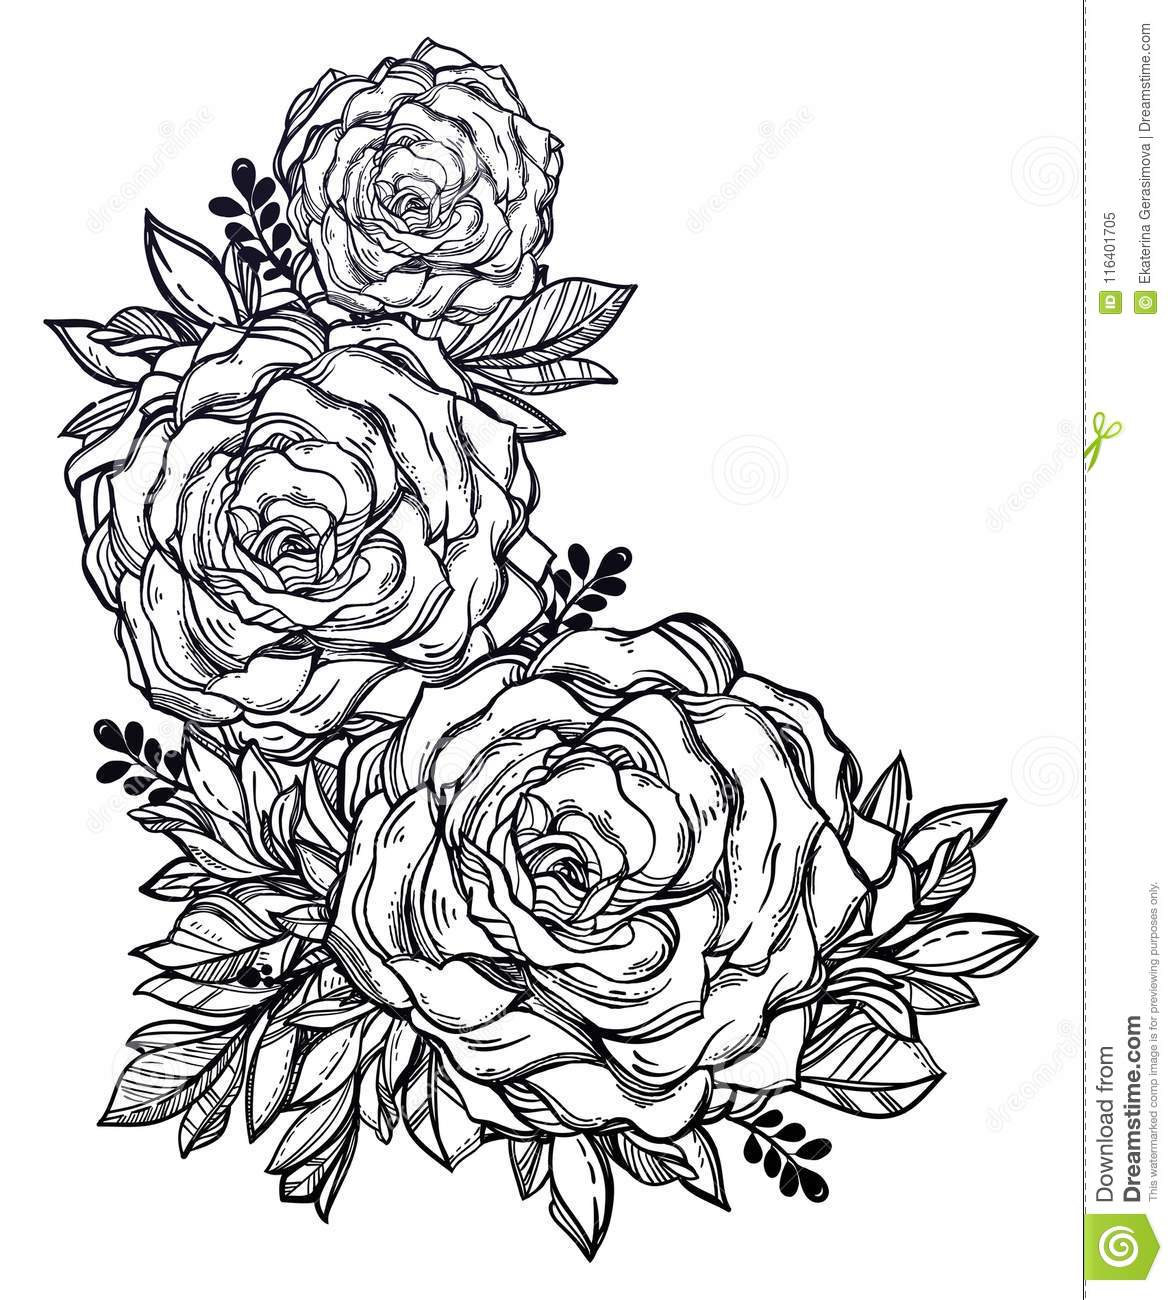 Vintage Floral Highly Detailed Hand Drawn Rose Flower Stem With Roses And Leaves Stock Vector Illustration Of Nature Love 116401705